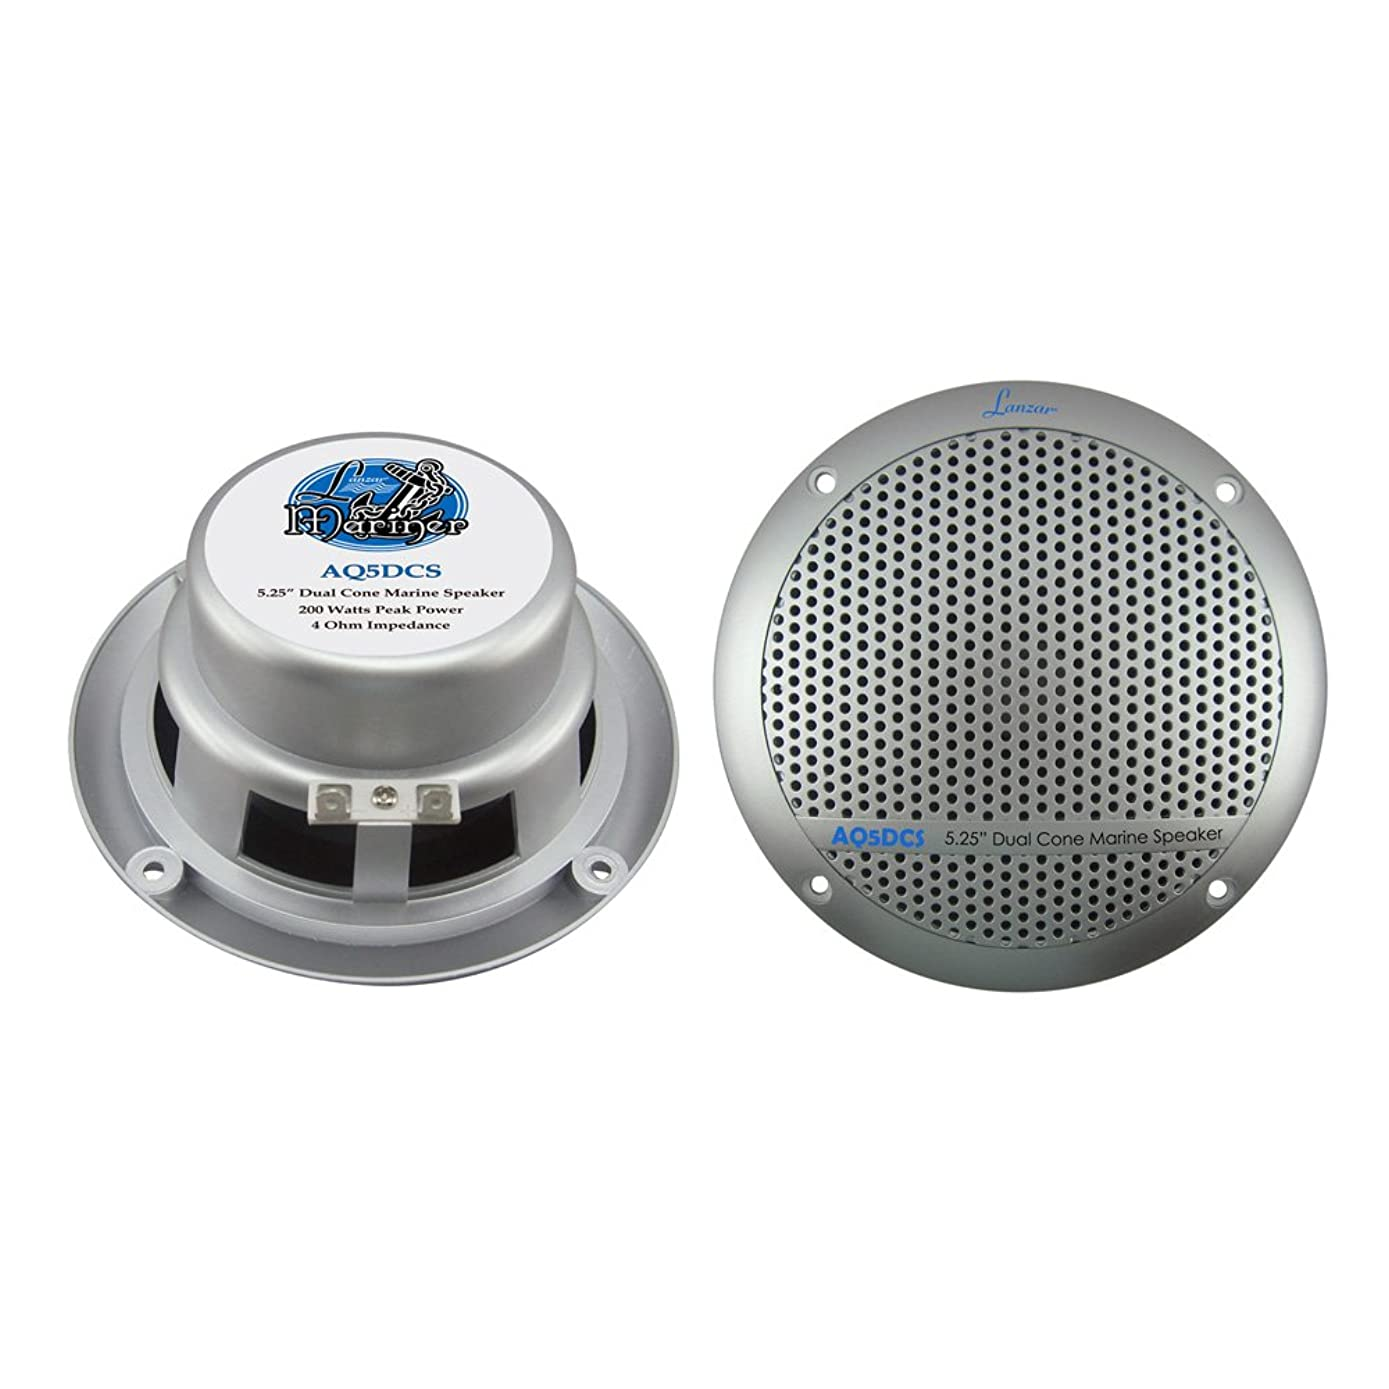 Lanzar 5.25 Inch Marine Speakers - 2 Way Water Resistant Audio Stereo Sound System with 300 Watt Power, Attachable Grills and Resin Treatment for Indoor and Outdoor Use - 1 Pair - AQ5DCS (Silver)